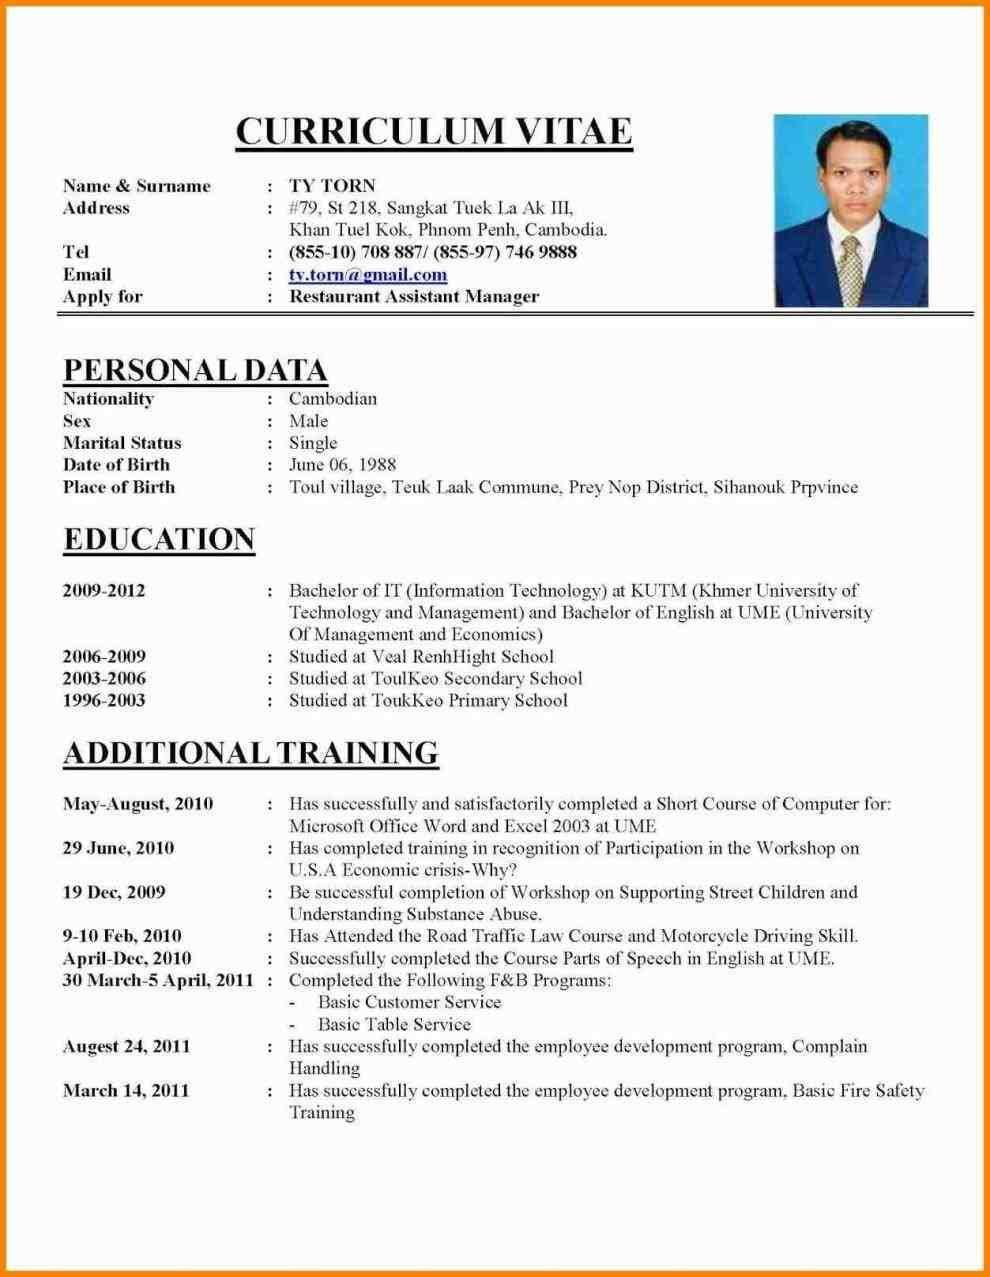 Cv Template Job Application Cv resume sample, How to